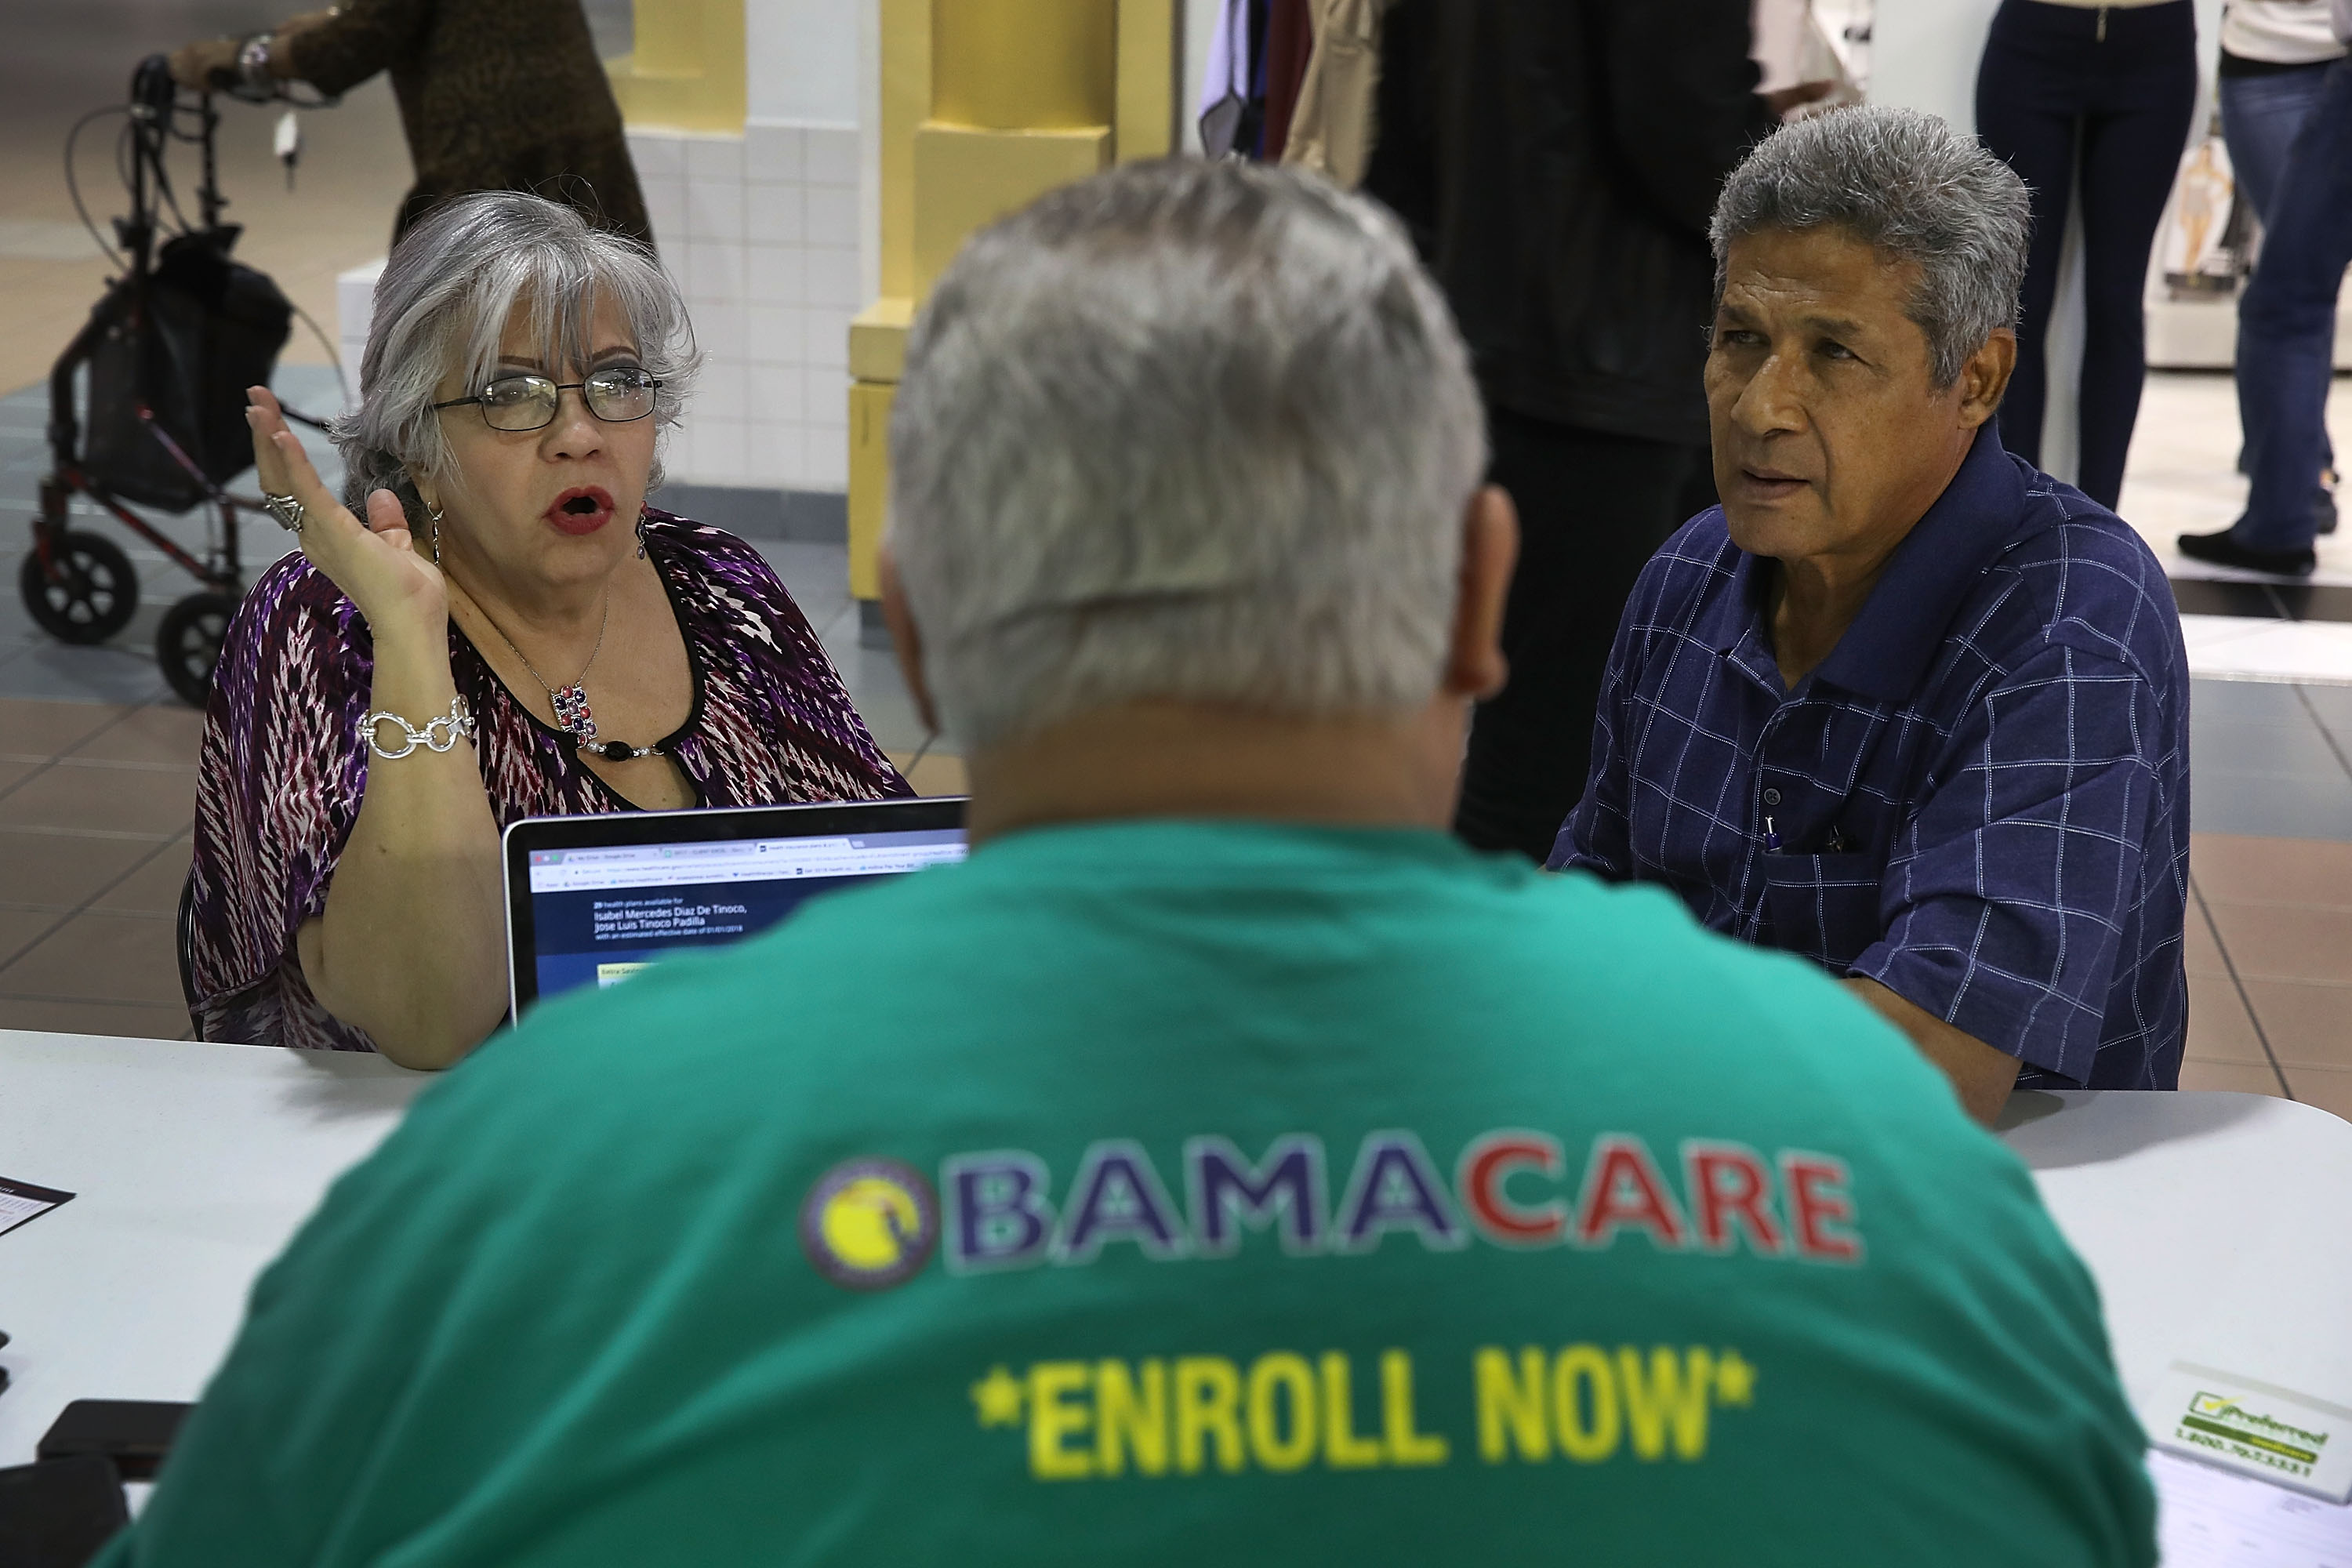 Isabel Diaz Tinoco (L) and Jose Luis Tinoco speak with Otto Hernandez, an insurance agent from Sunshine Life and Health Advisors, as they shop for insurance under the Affordable Care Act at a store setup in the Mall of Americas on November 1, 2017 in Miami, Florida. (Photo by Joe Raedle/Getty Images)